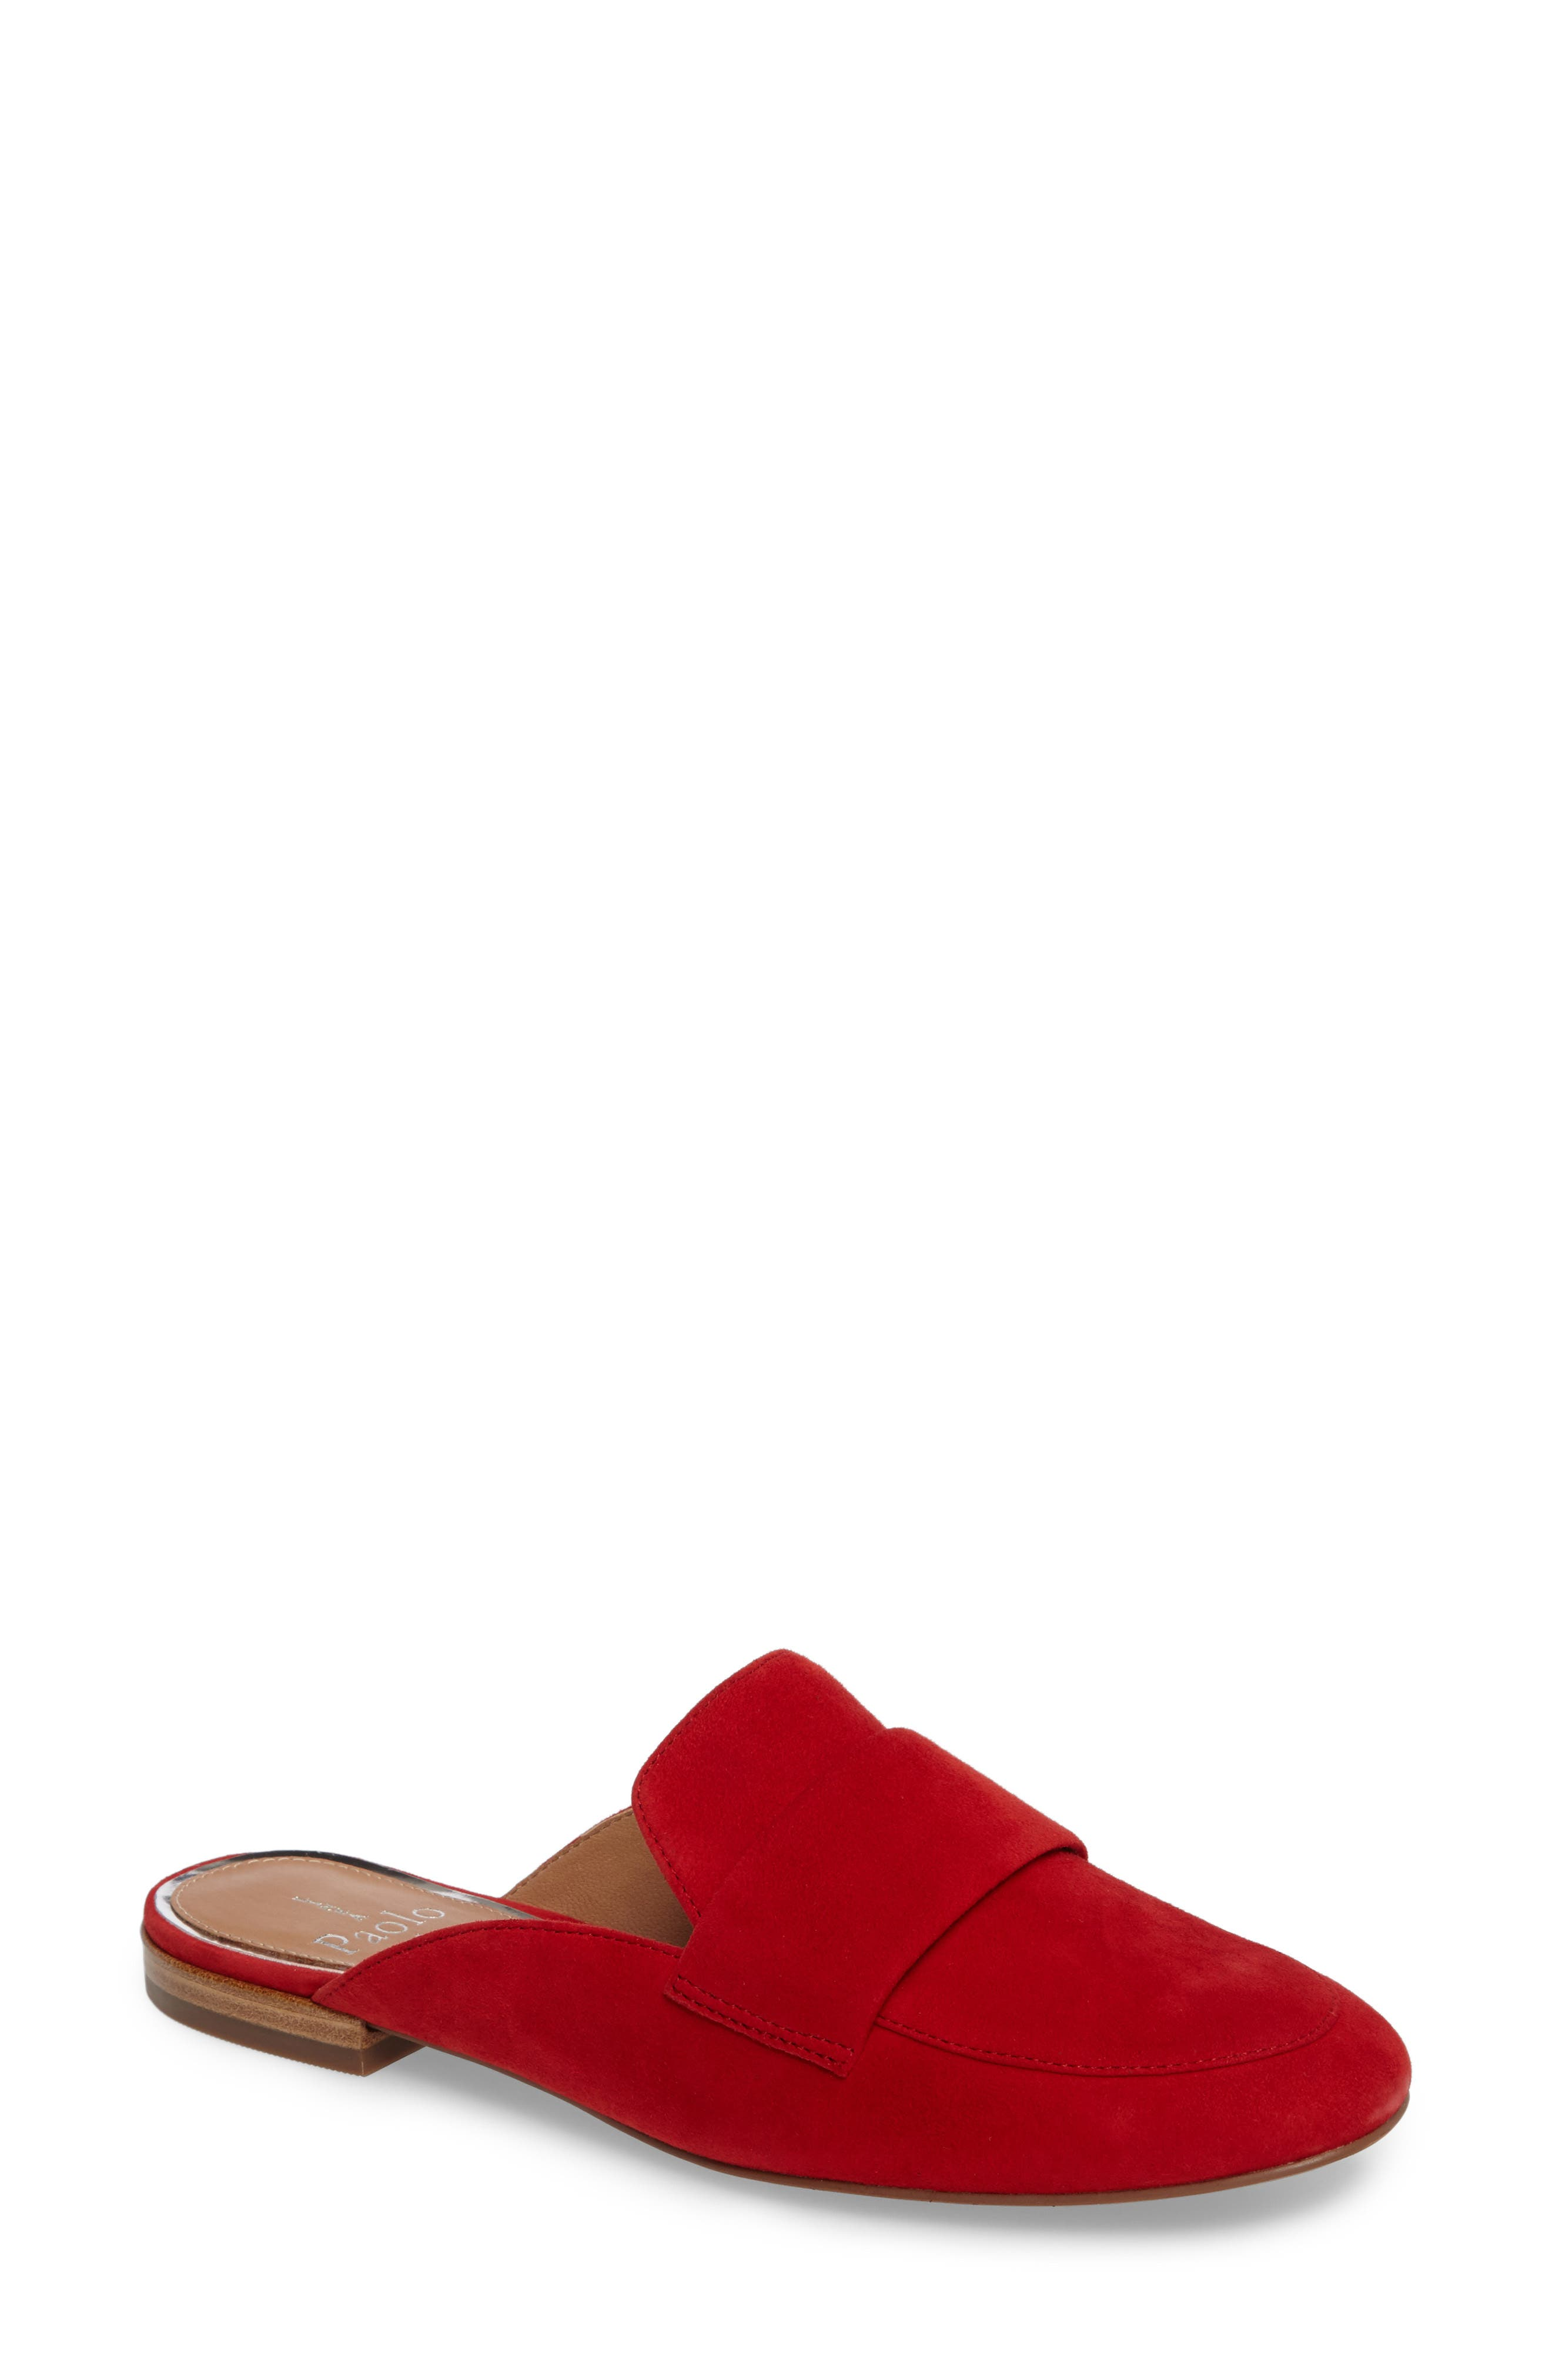 Linea Paolo Annie Loafer Mule, Red